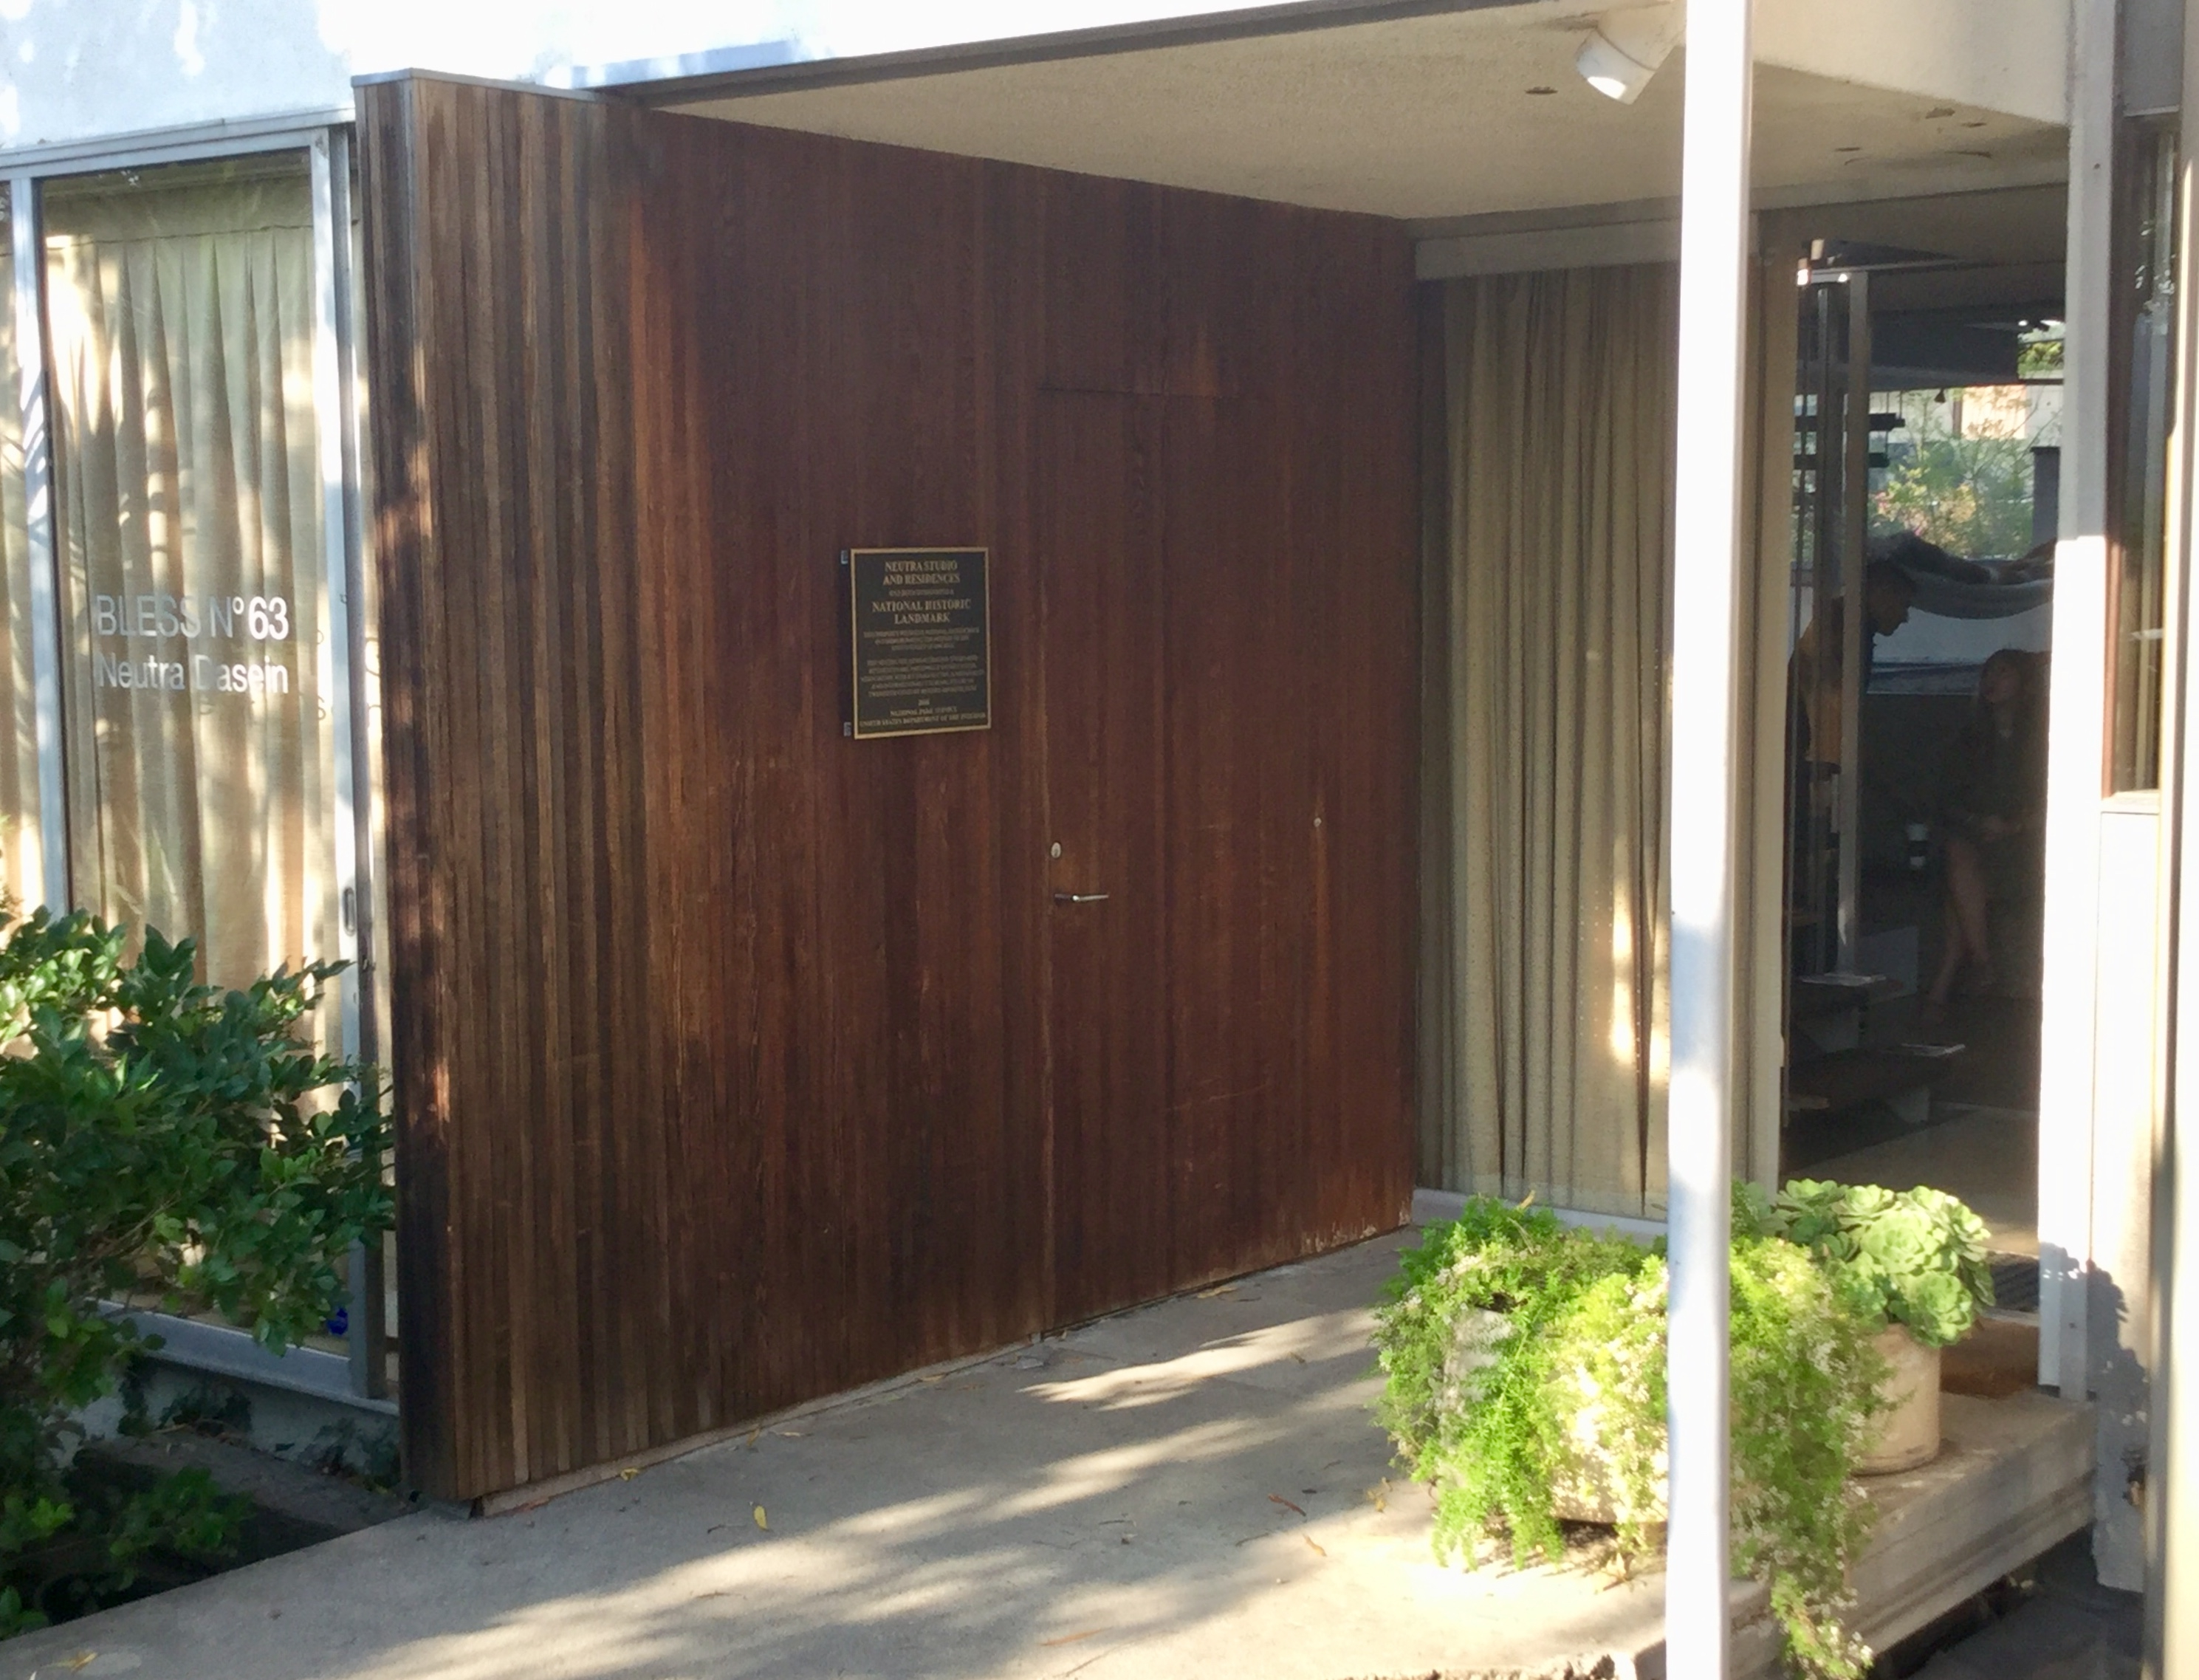 Neutra Studio and Residences Marker